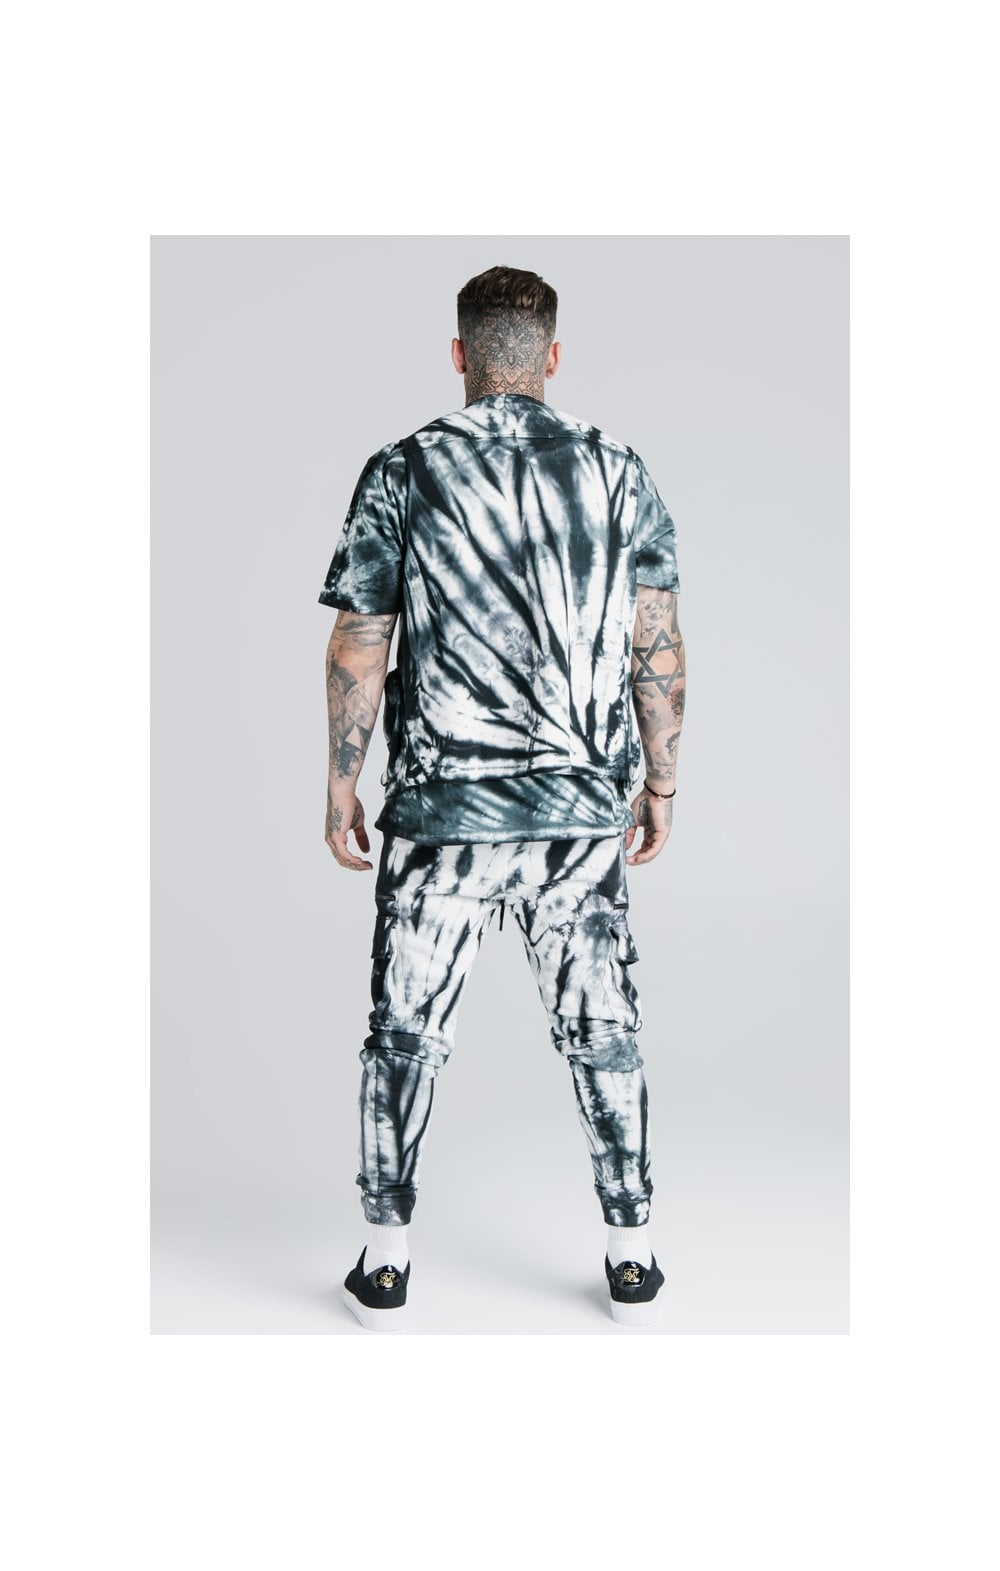 Load image into Gallery viewer, SikSilk X Steve Aoki Utility Vest - Black & White Ink Tie Dye (6)